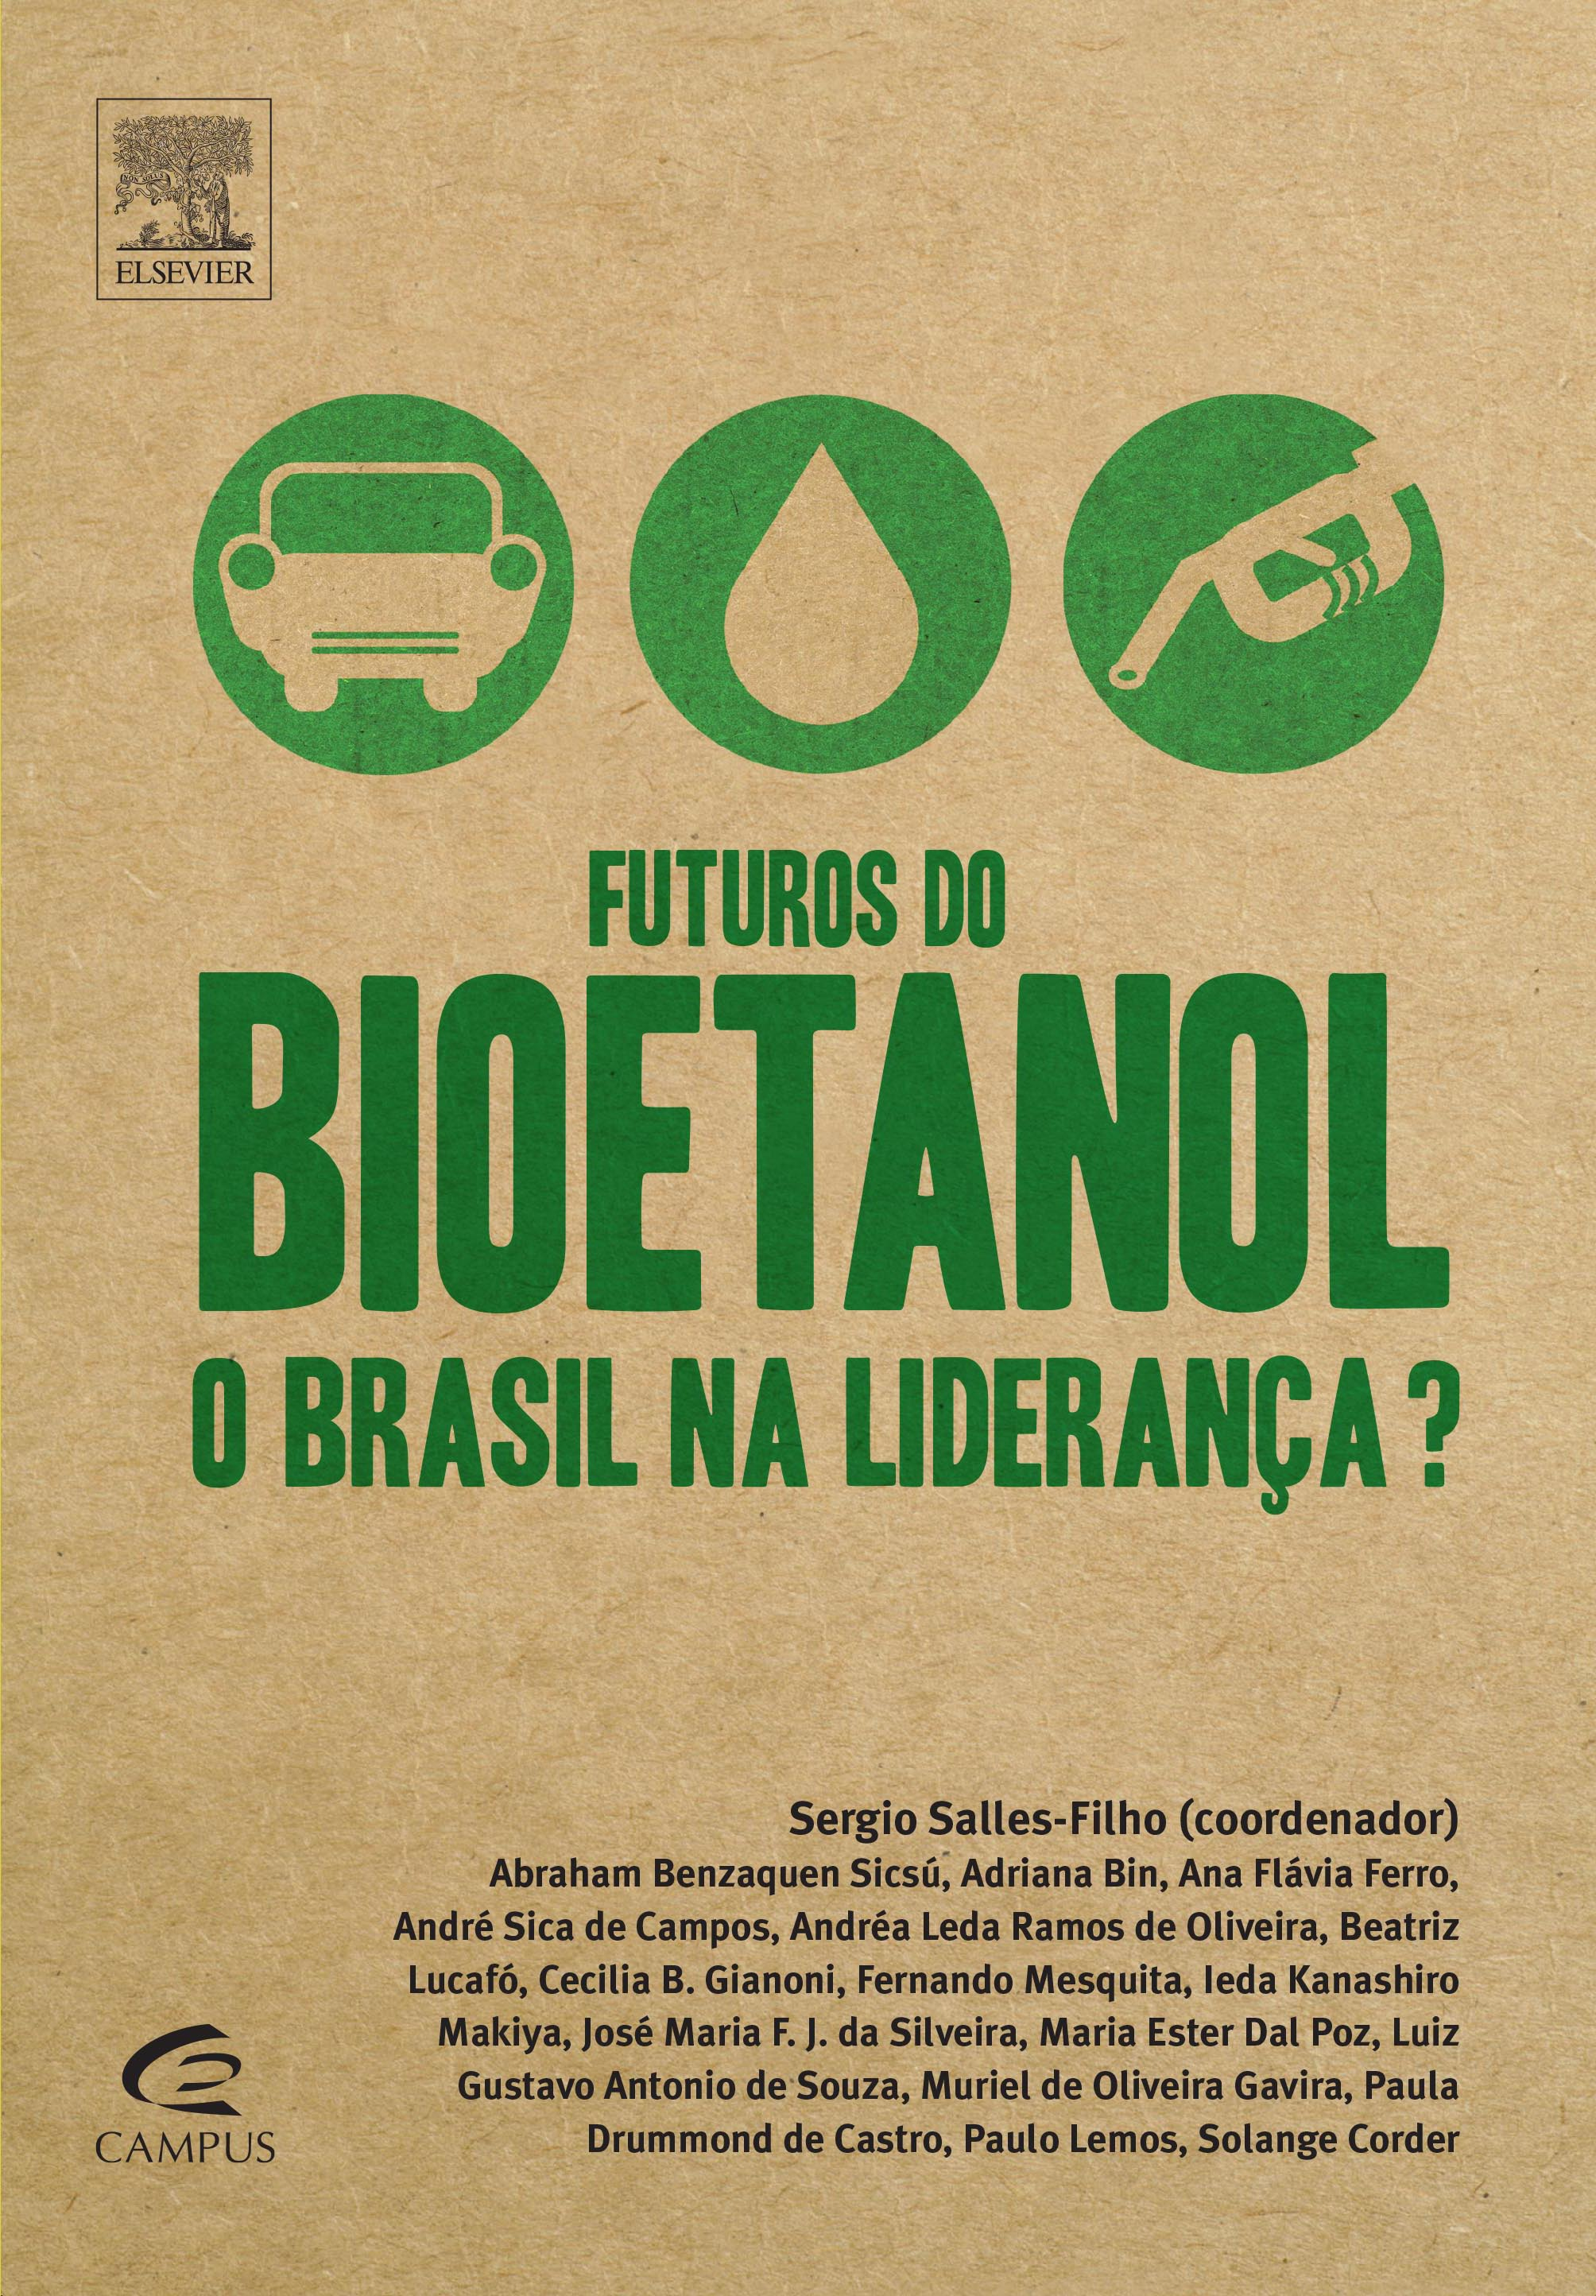 Futuros do Bioetanol